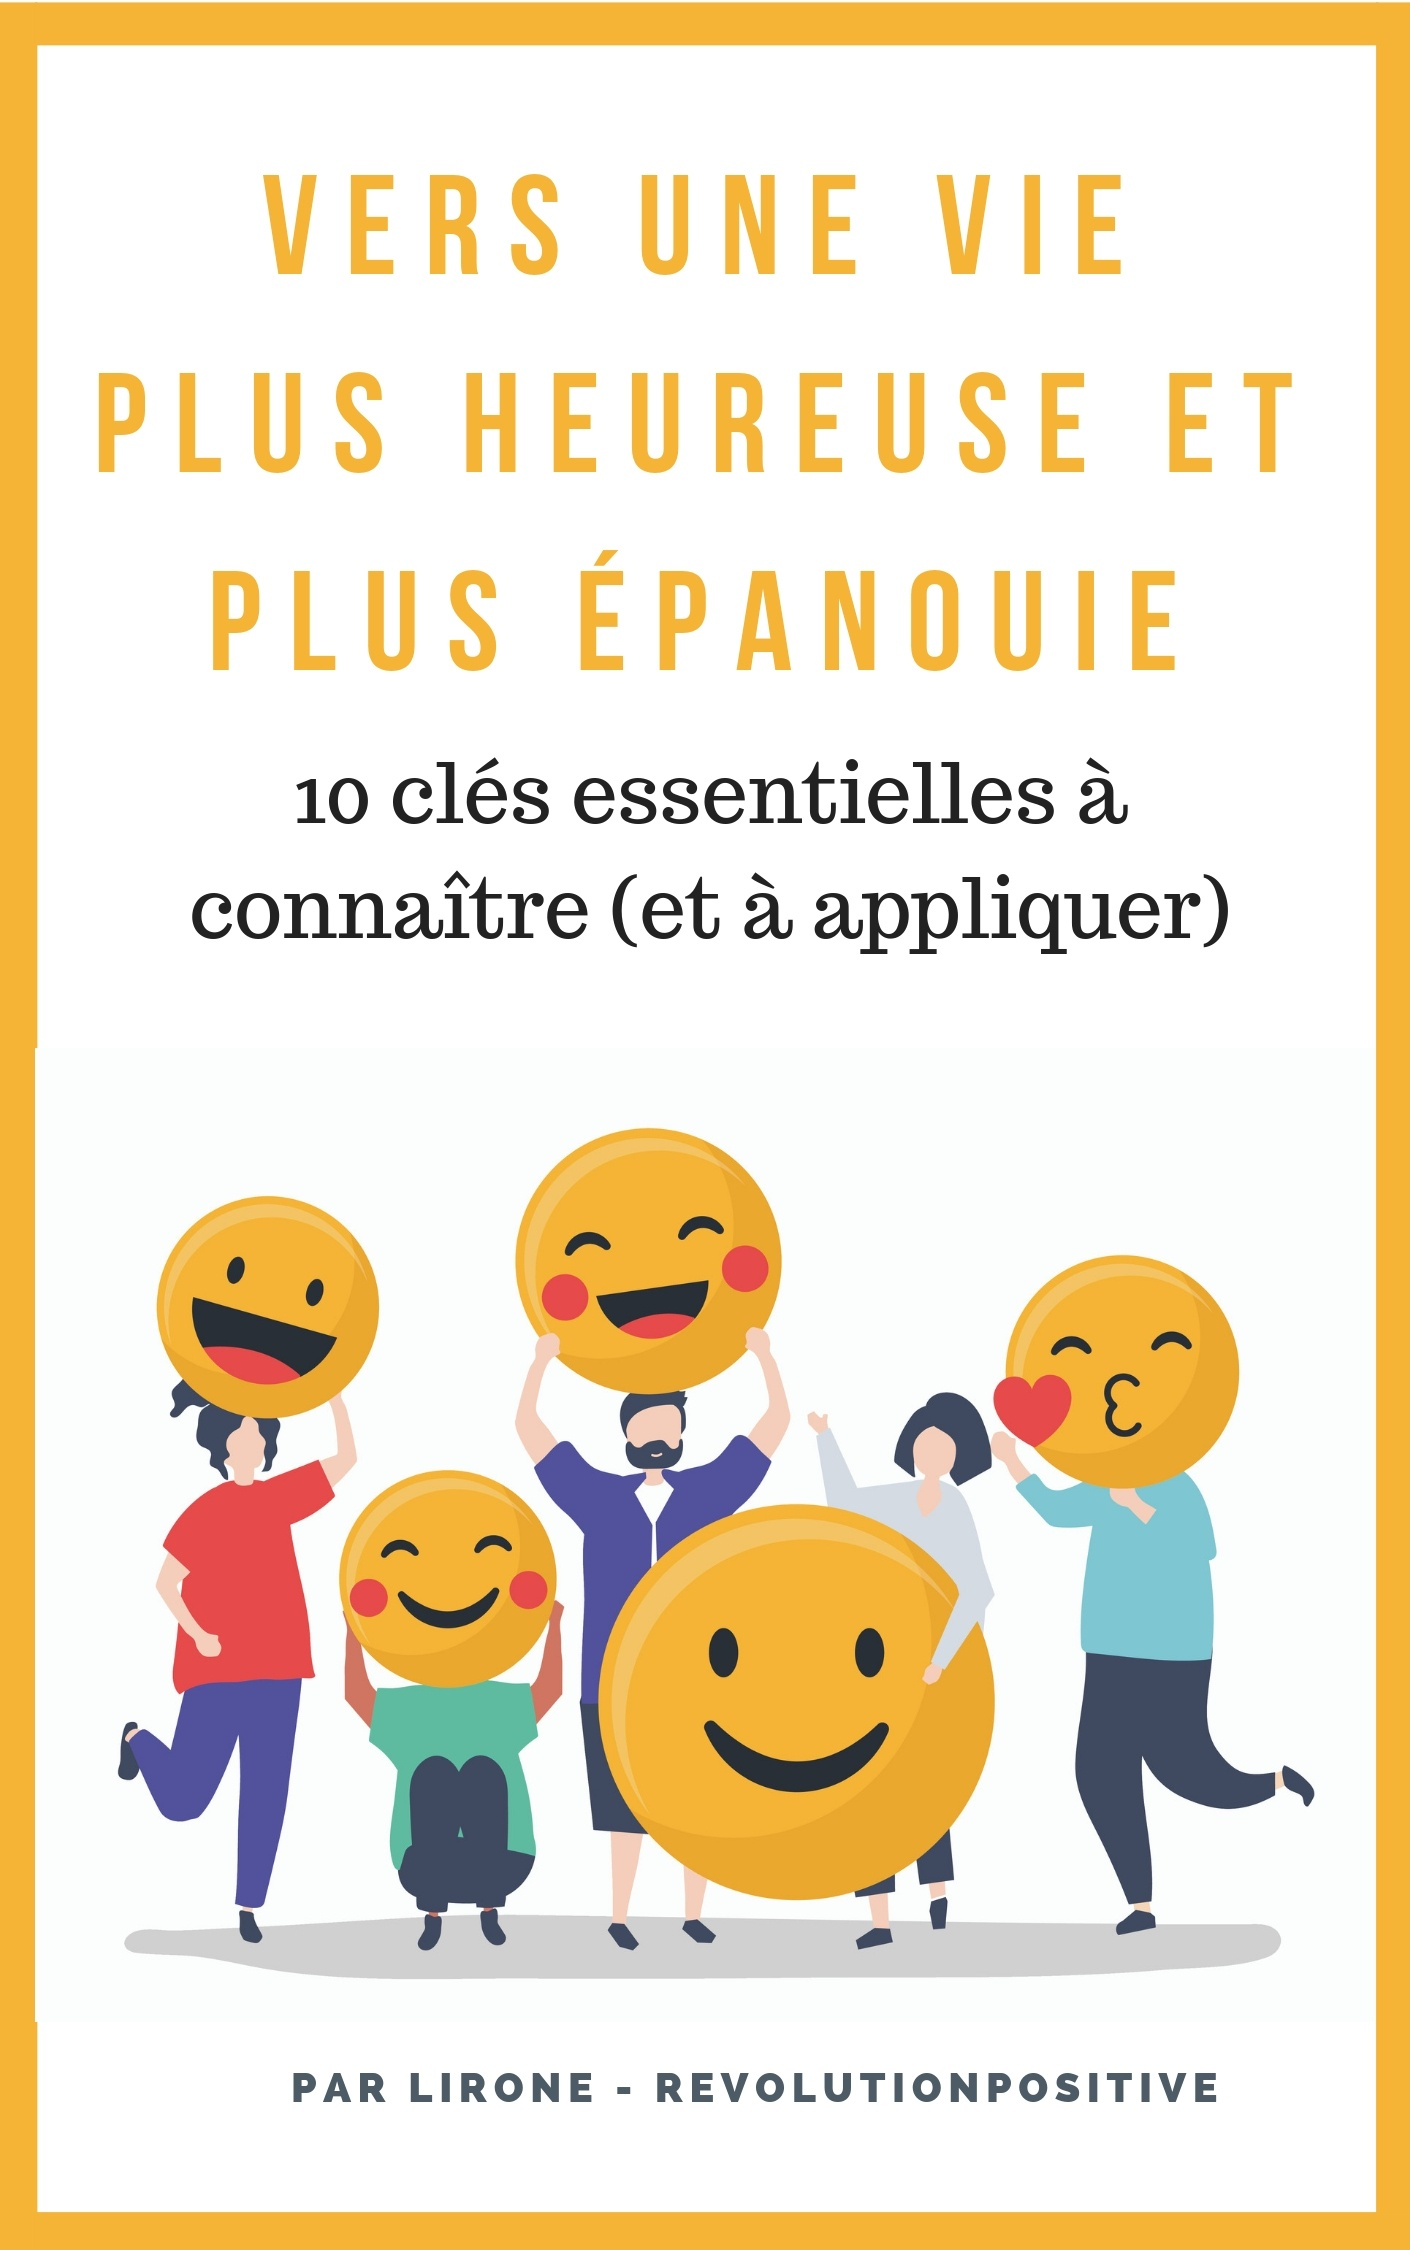 Formation gratuite de psychologie positive